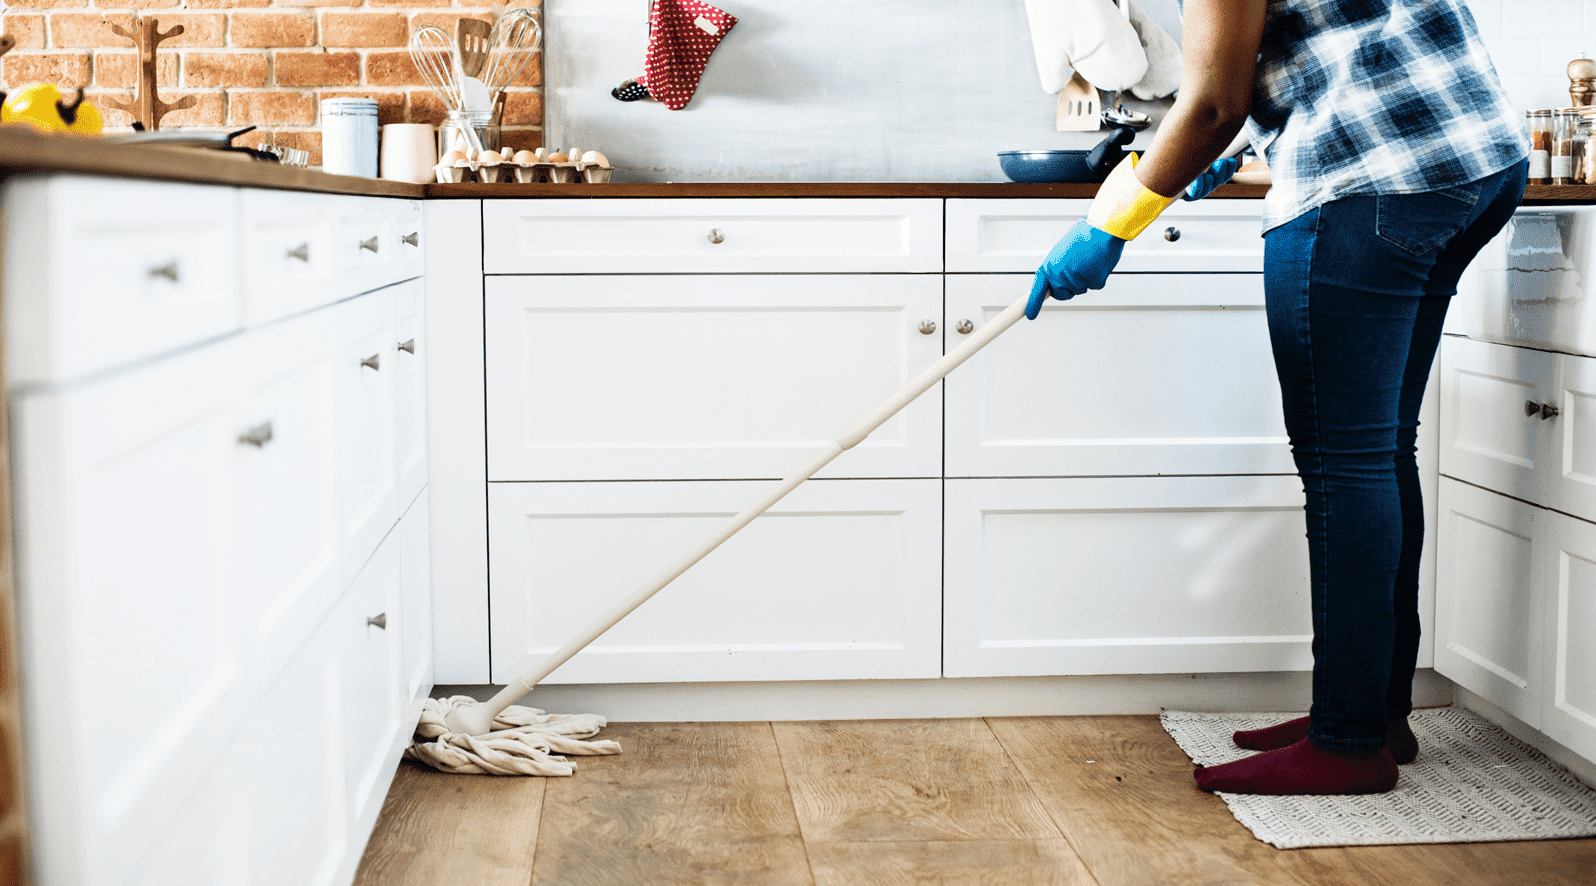 Home Cleaning services in abu dhabi